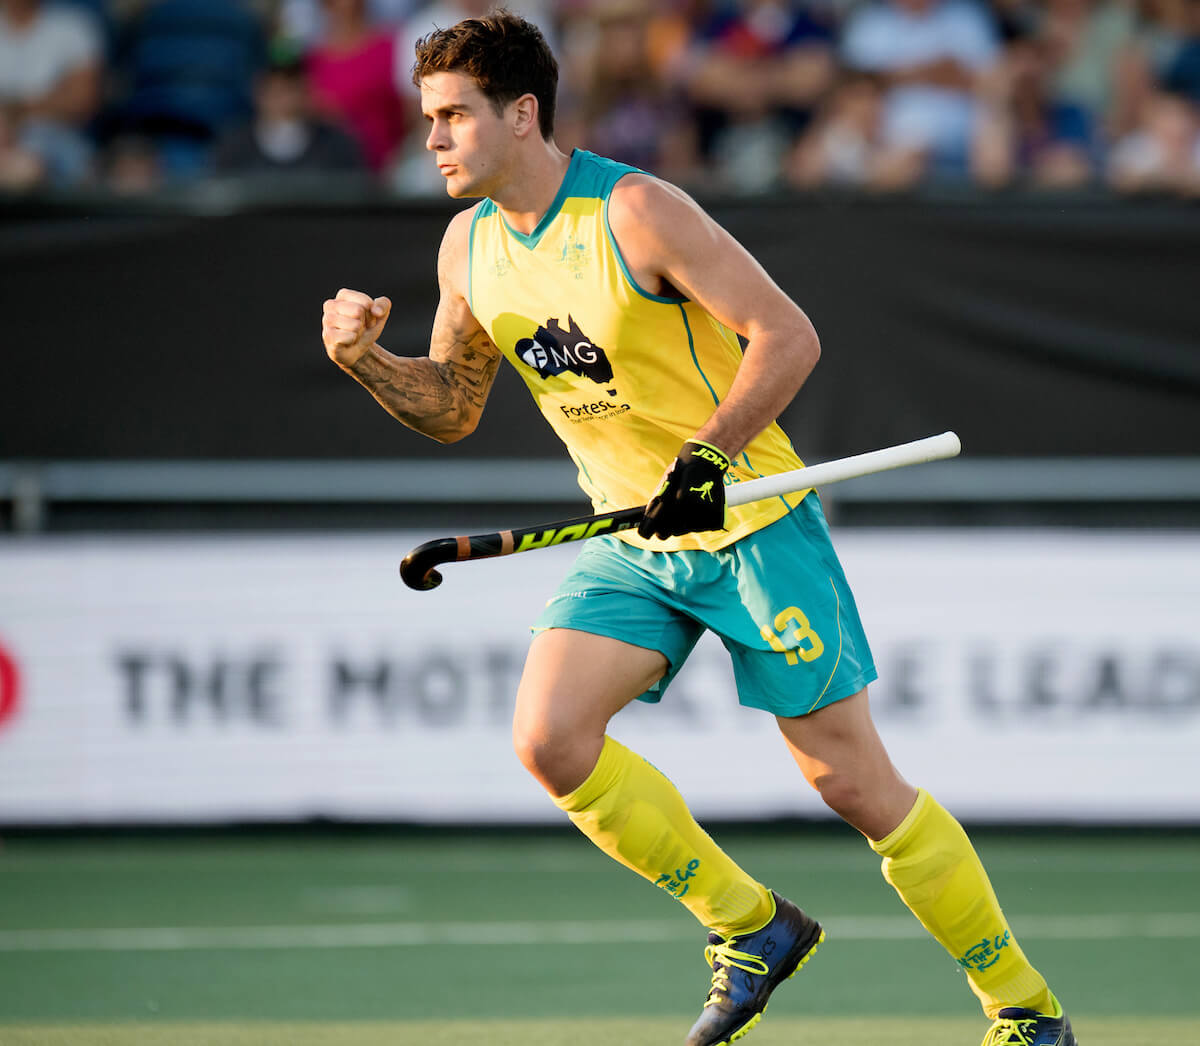 Hockey Australia's #Supercamp is on now in Perth